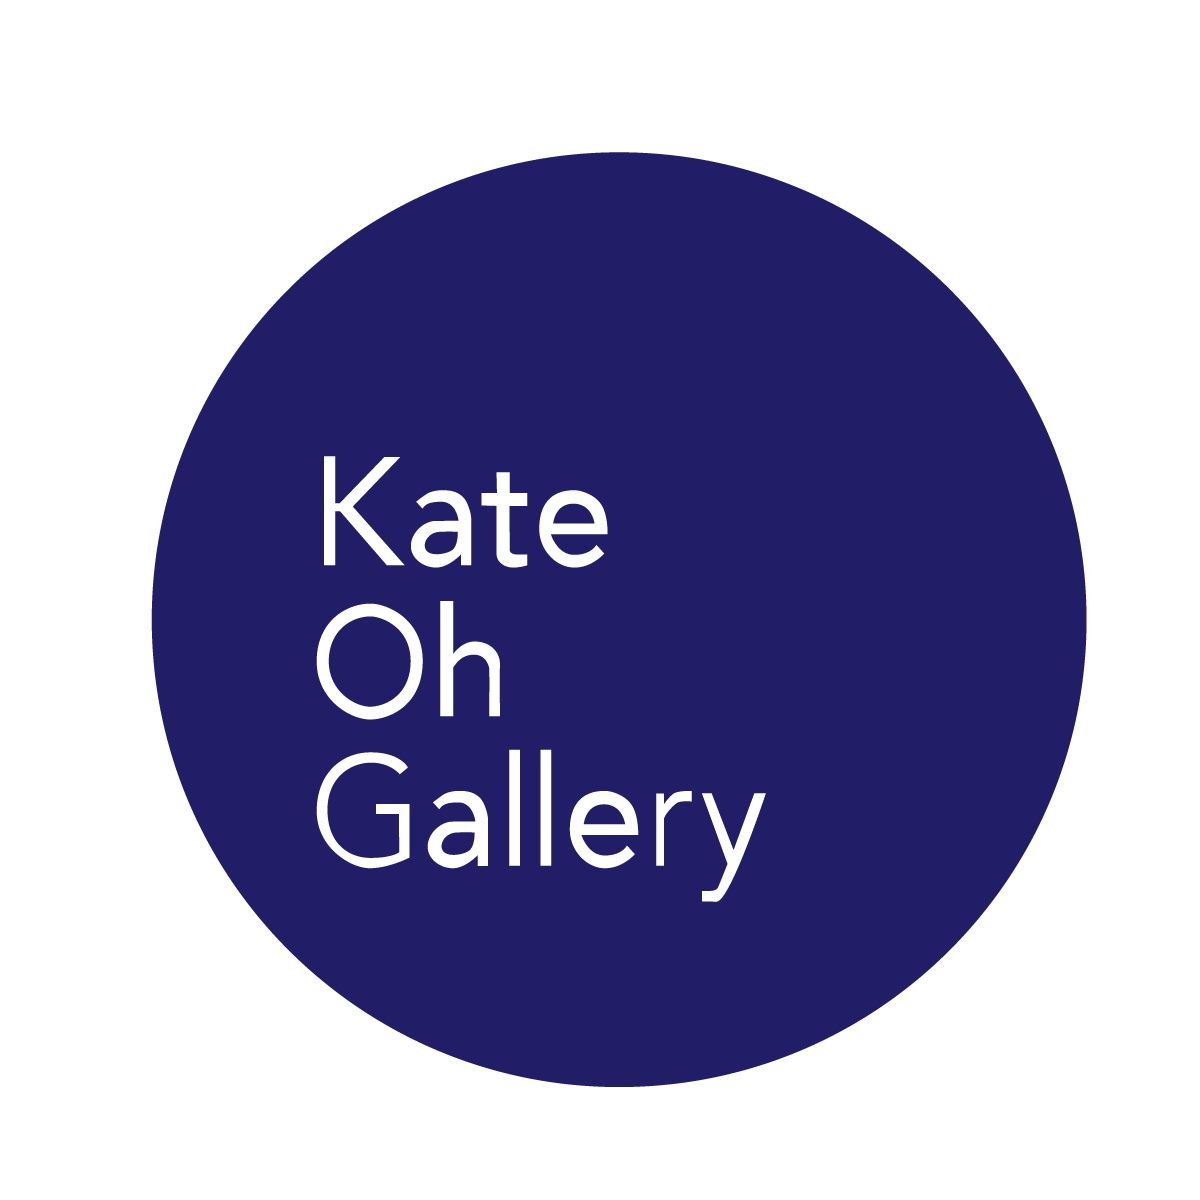 Kate Oh Gallery logo.png